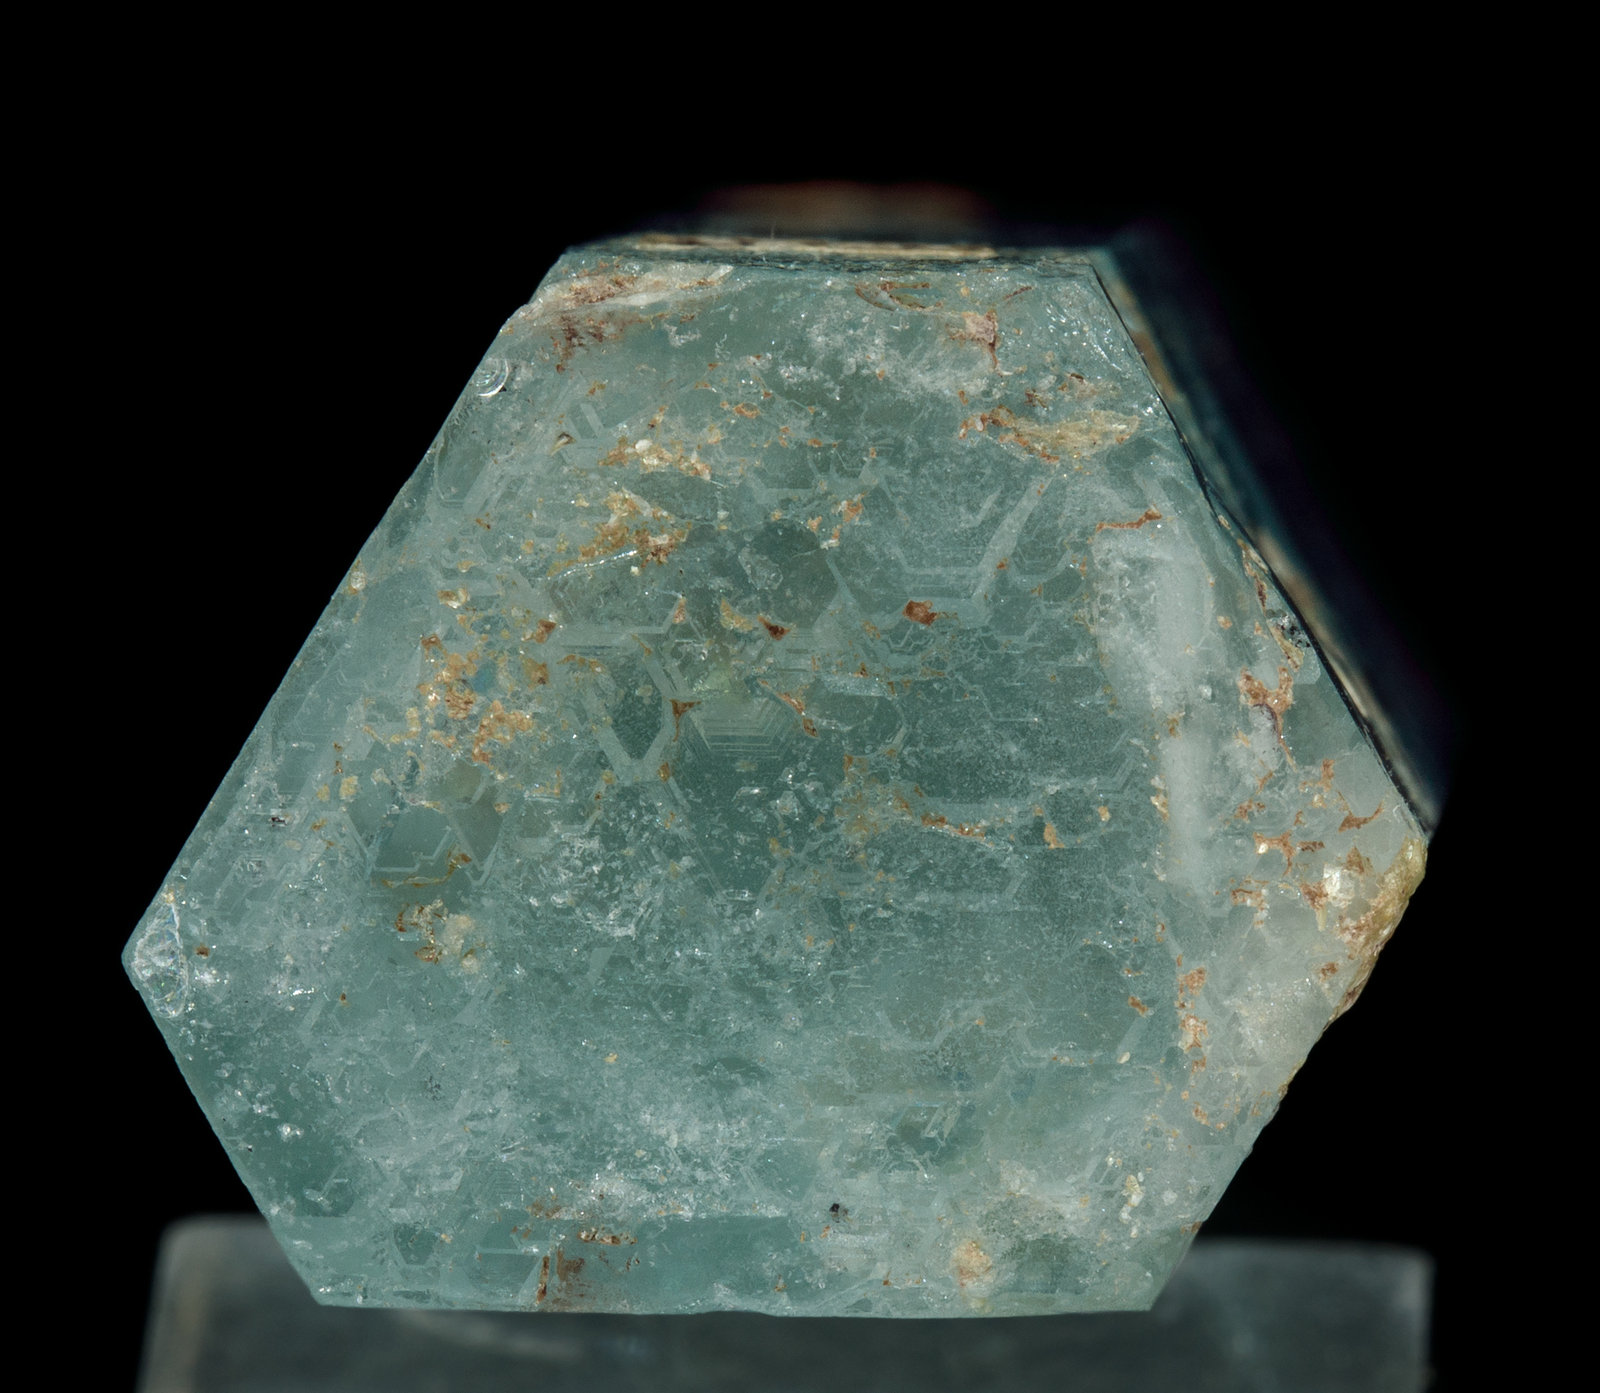 specimens/s_imagesY4/Beryl_aquamarine-VE72Y4b.jpg